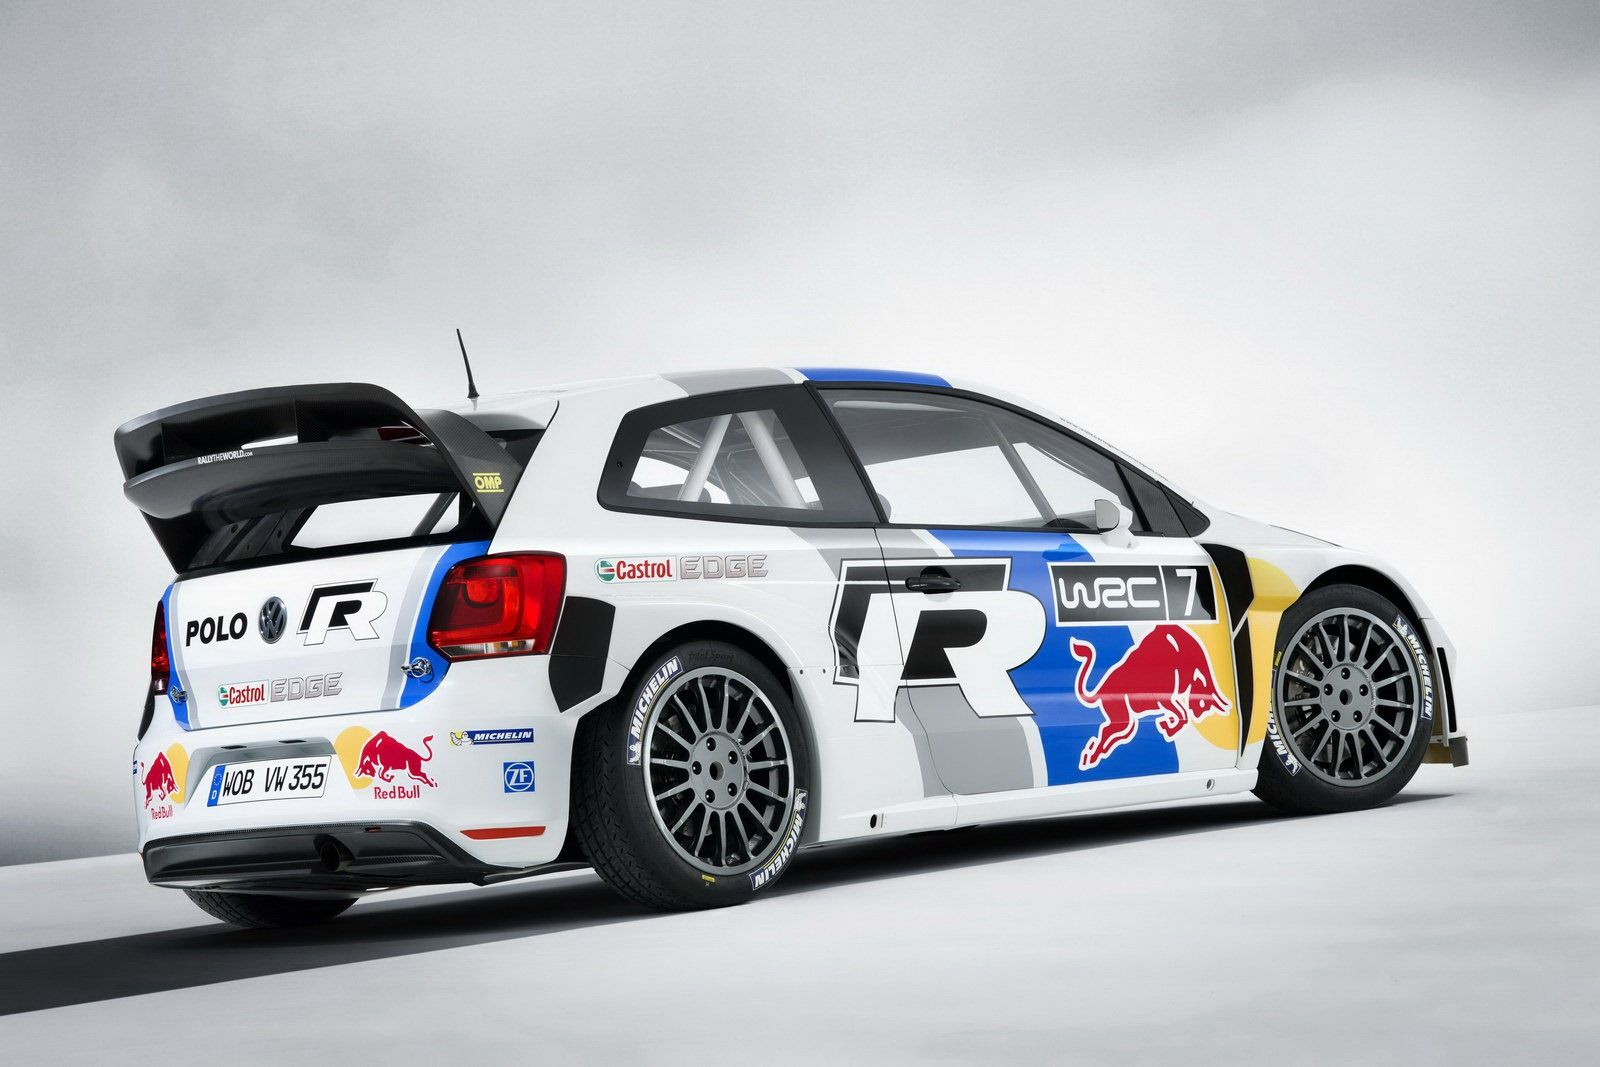 Vw S Polo R Wrc Is A 220hp 33 900 Celebration Of Its Entry Into World Rallying 106 Photos Carscoop